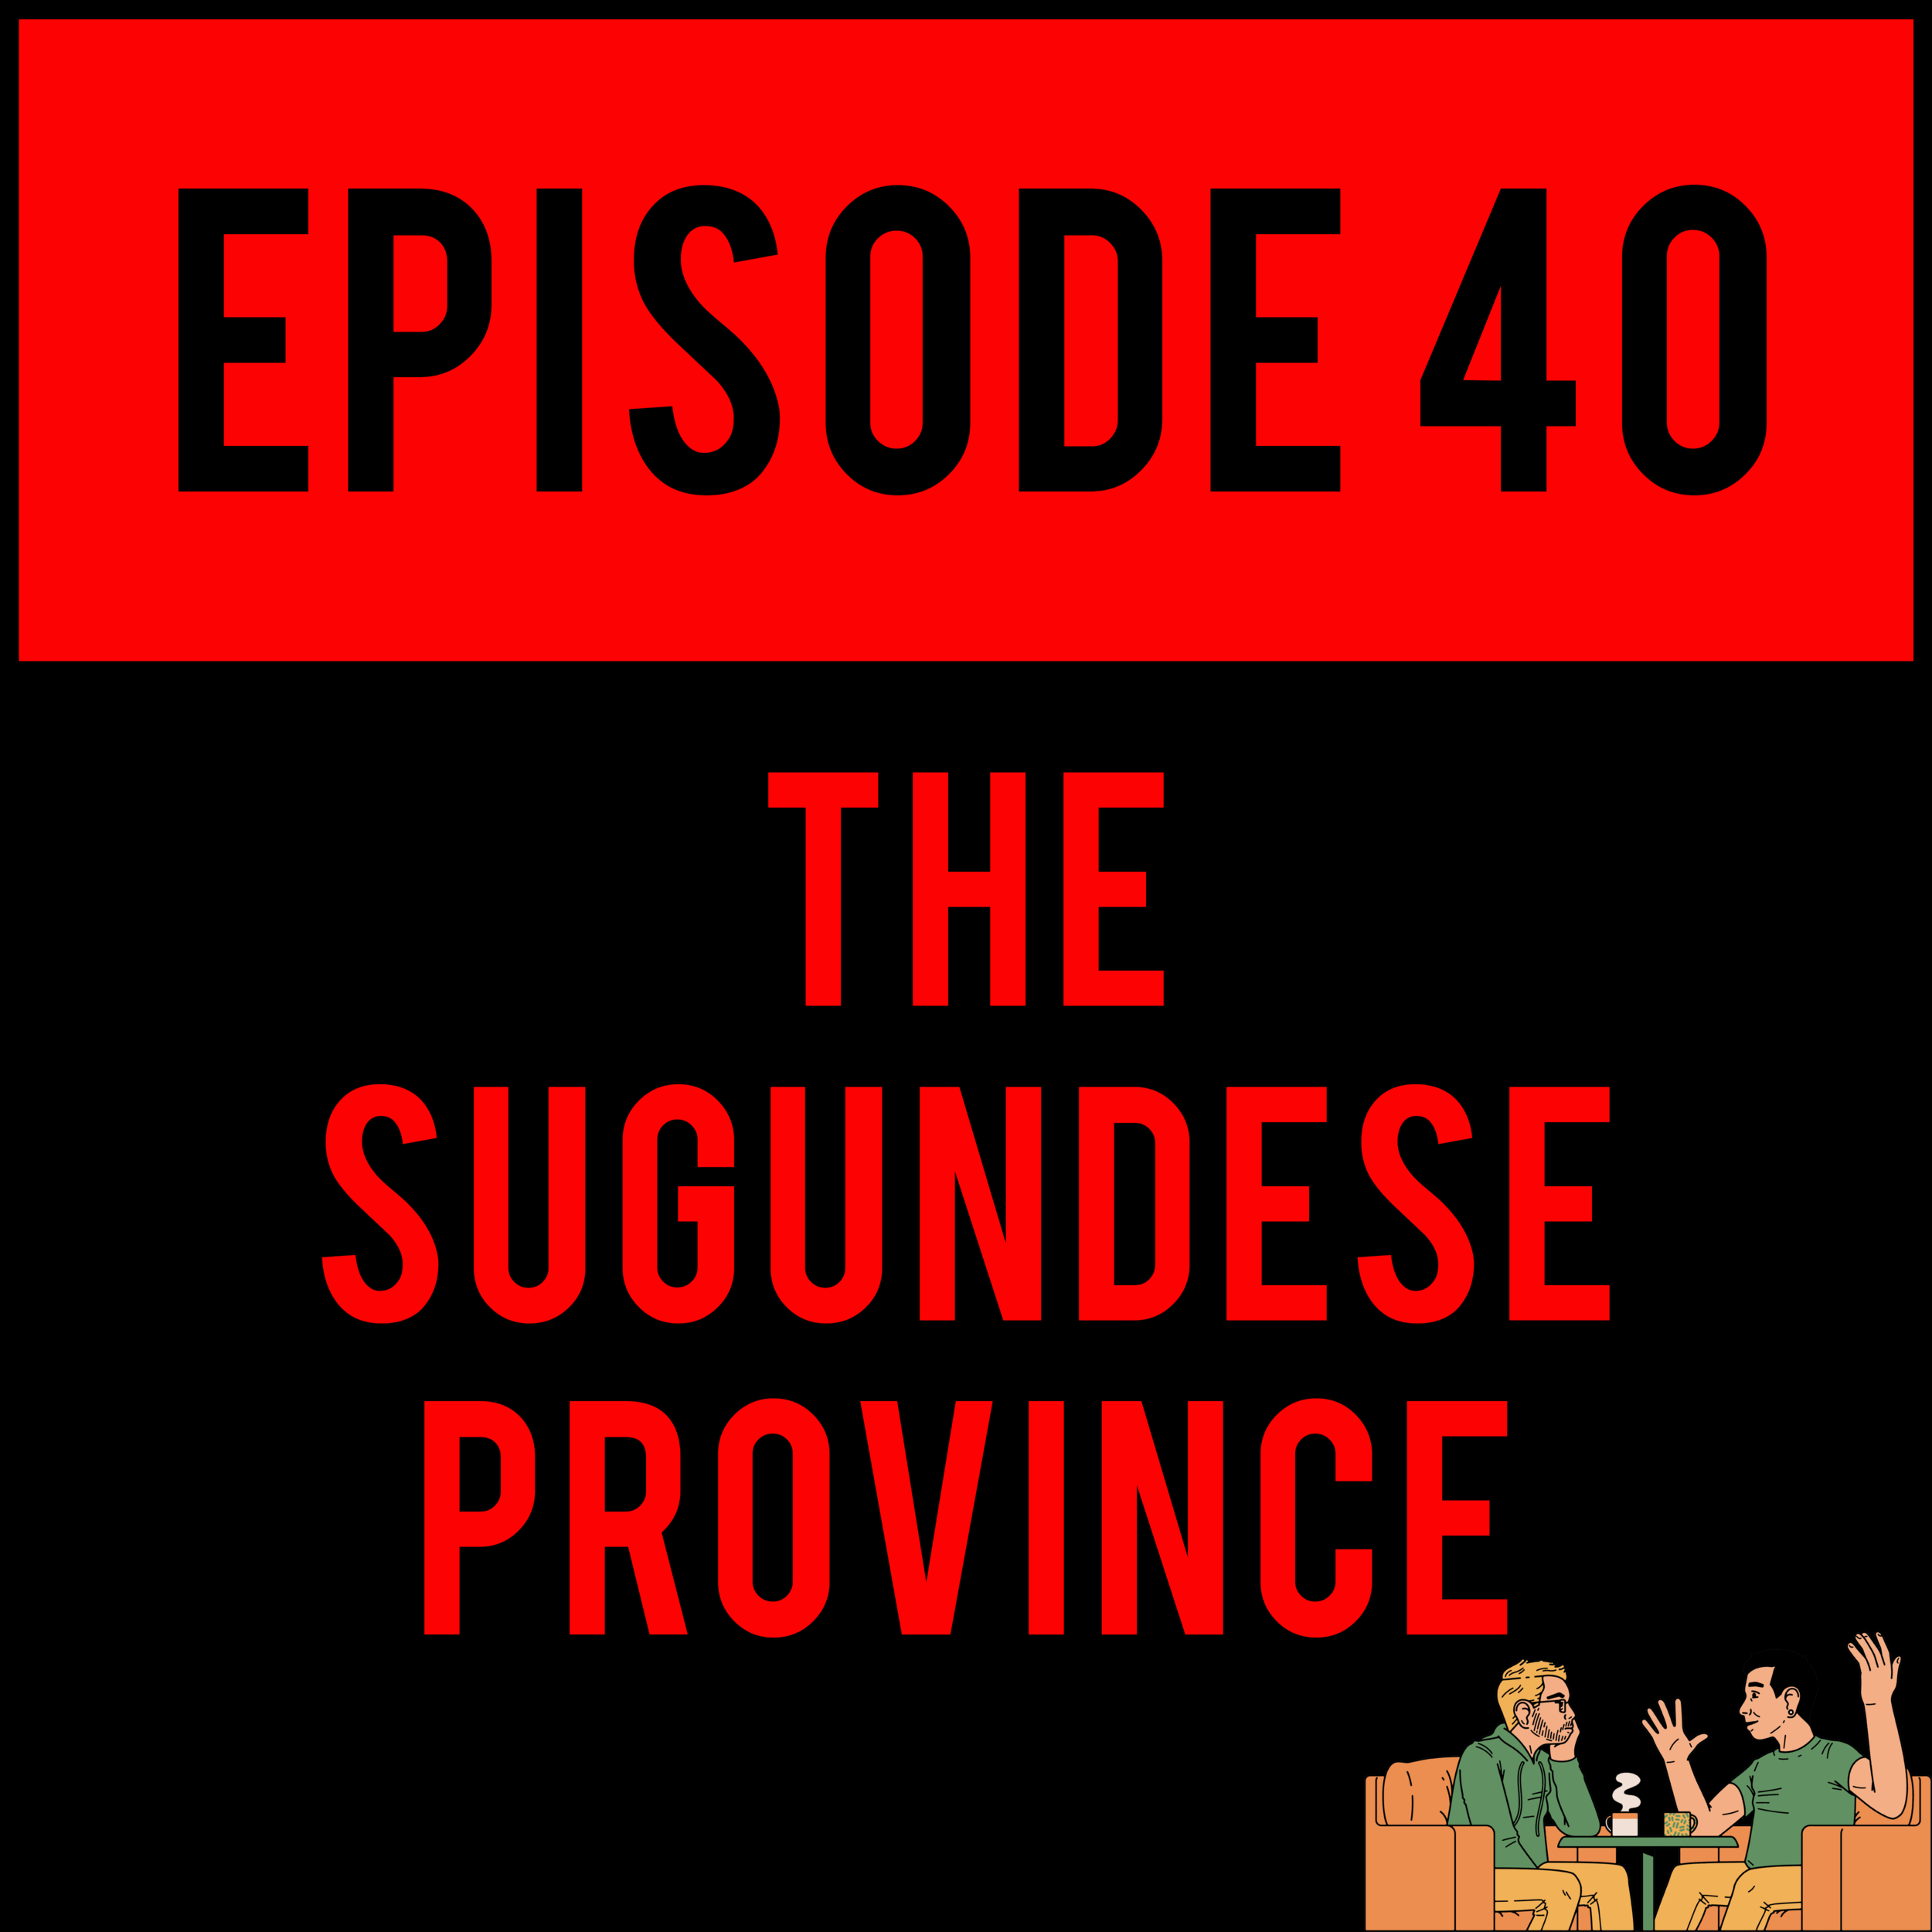 EPISODE 40 - We hope you like memes... THE SUGUNDESE PROVINCE - EPISODE 40 withBrandon Karlisis OUT, SON.